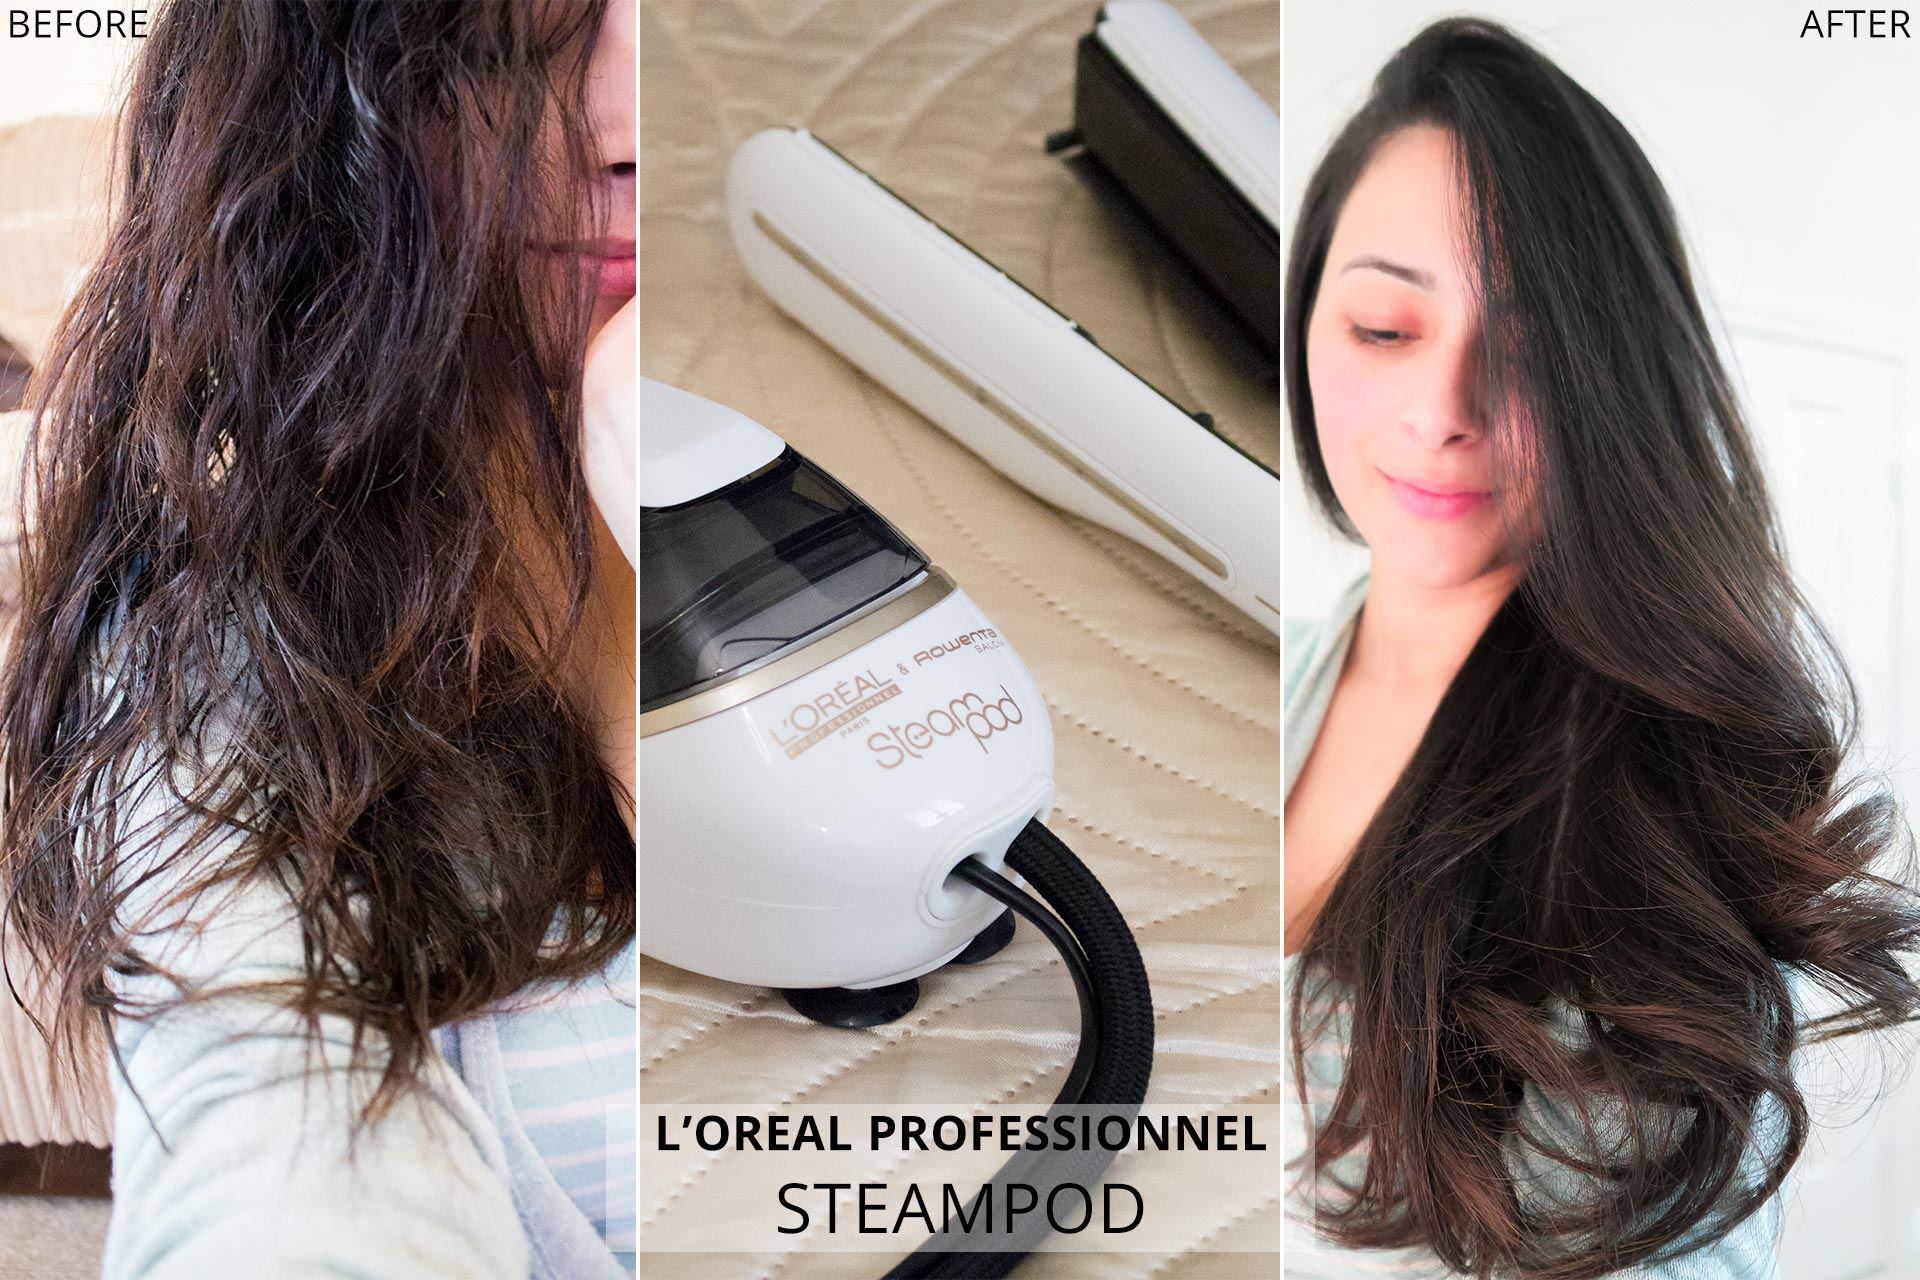 Review L Oreal Steampod 2 0 Straightener Before & After